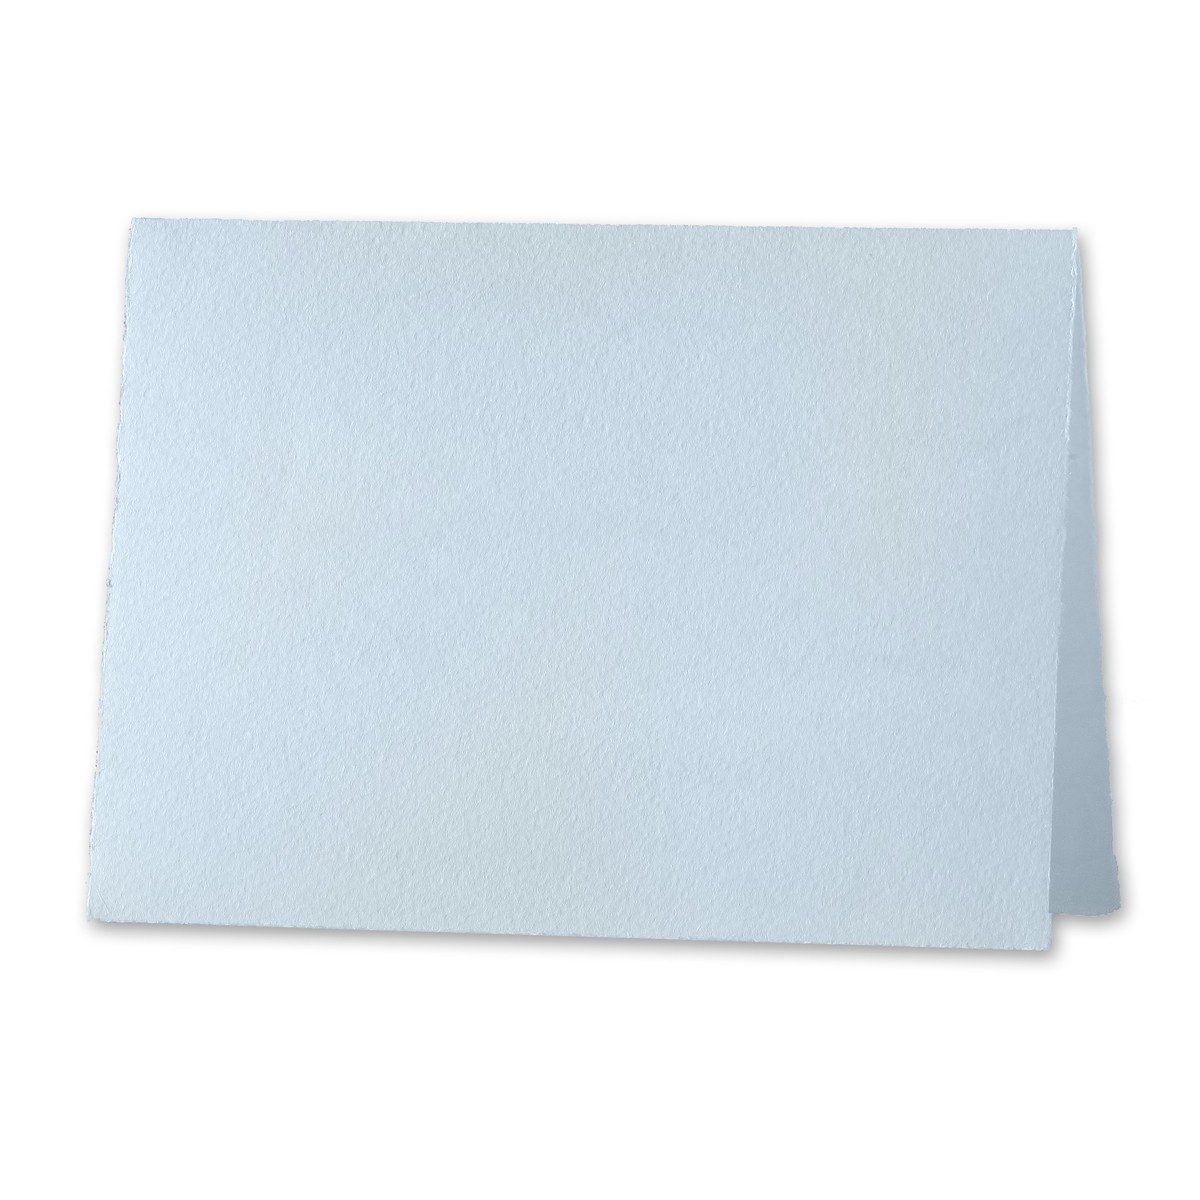 """Arturo Pale Blue Reply Card Foldovers (500LC) 97# Cover (5.12"""" x 6.7"""" open size) Bulk Pack of 100"""